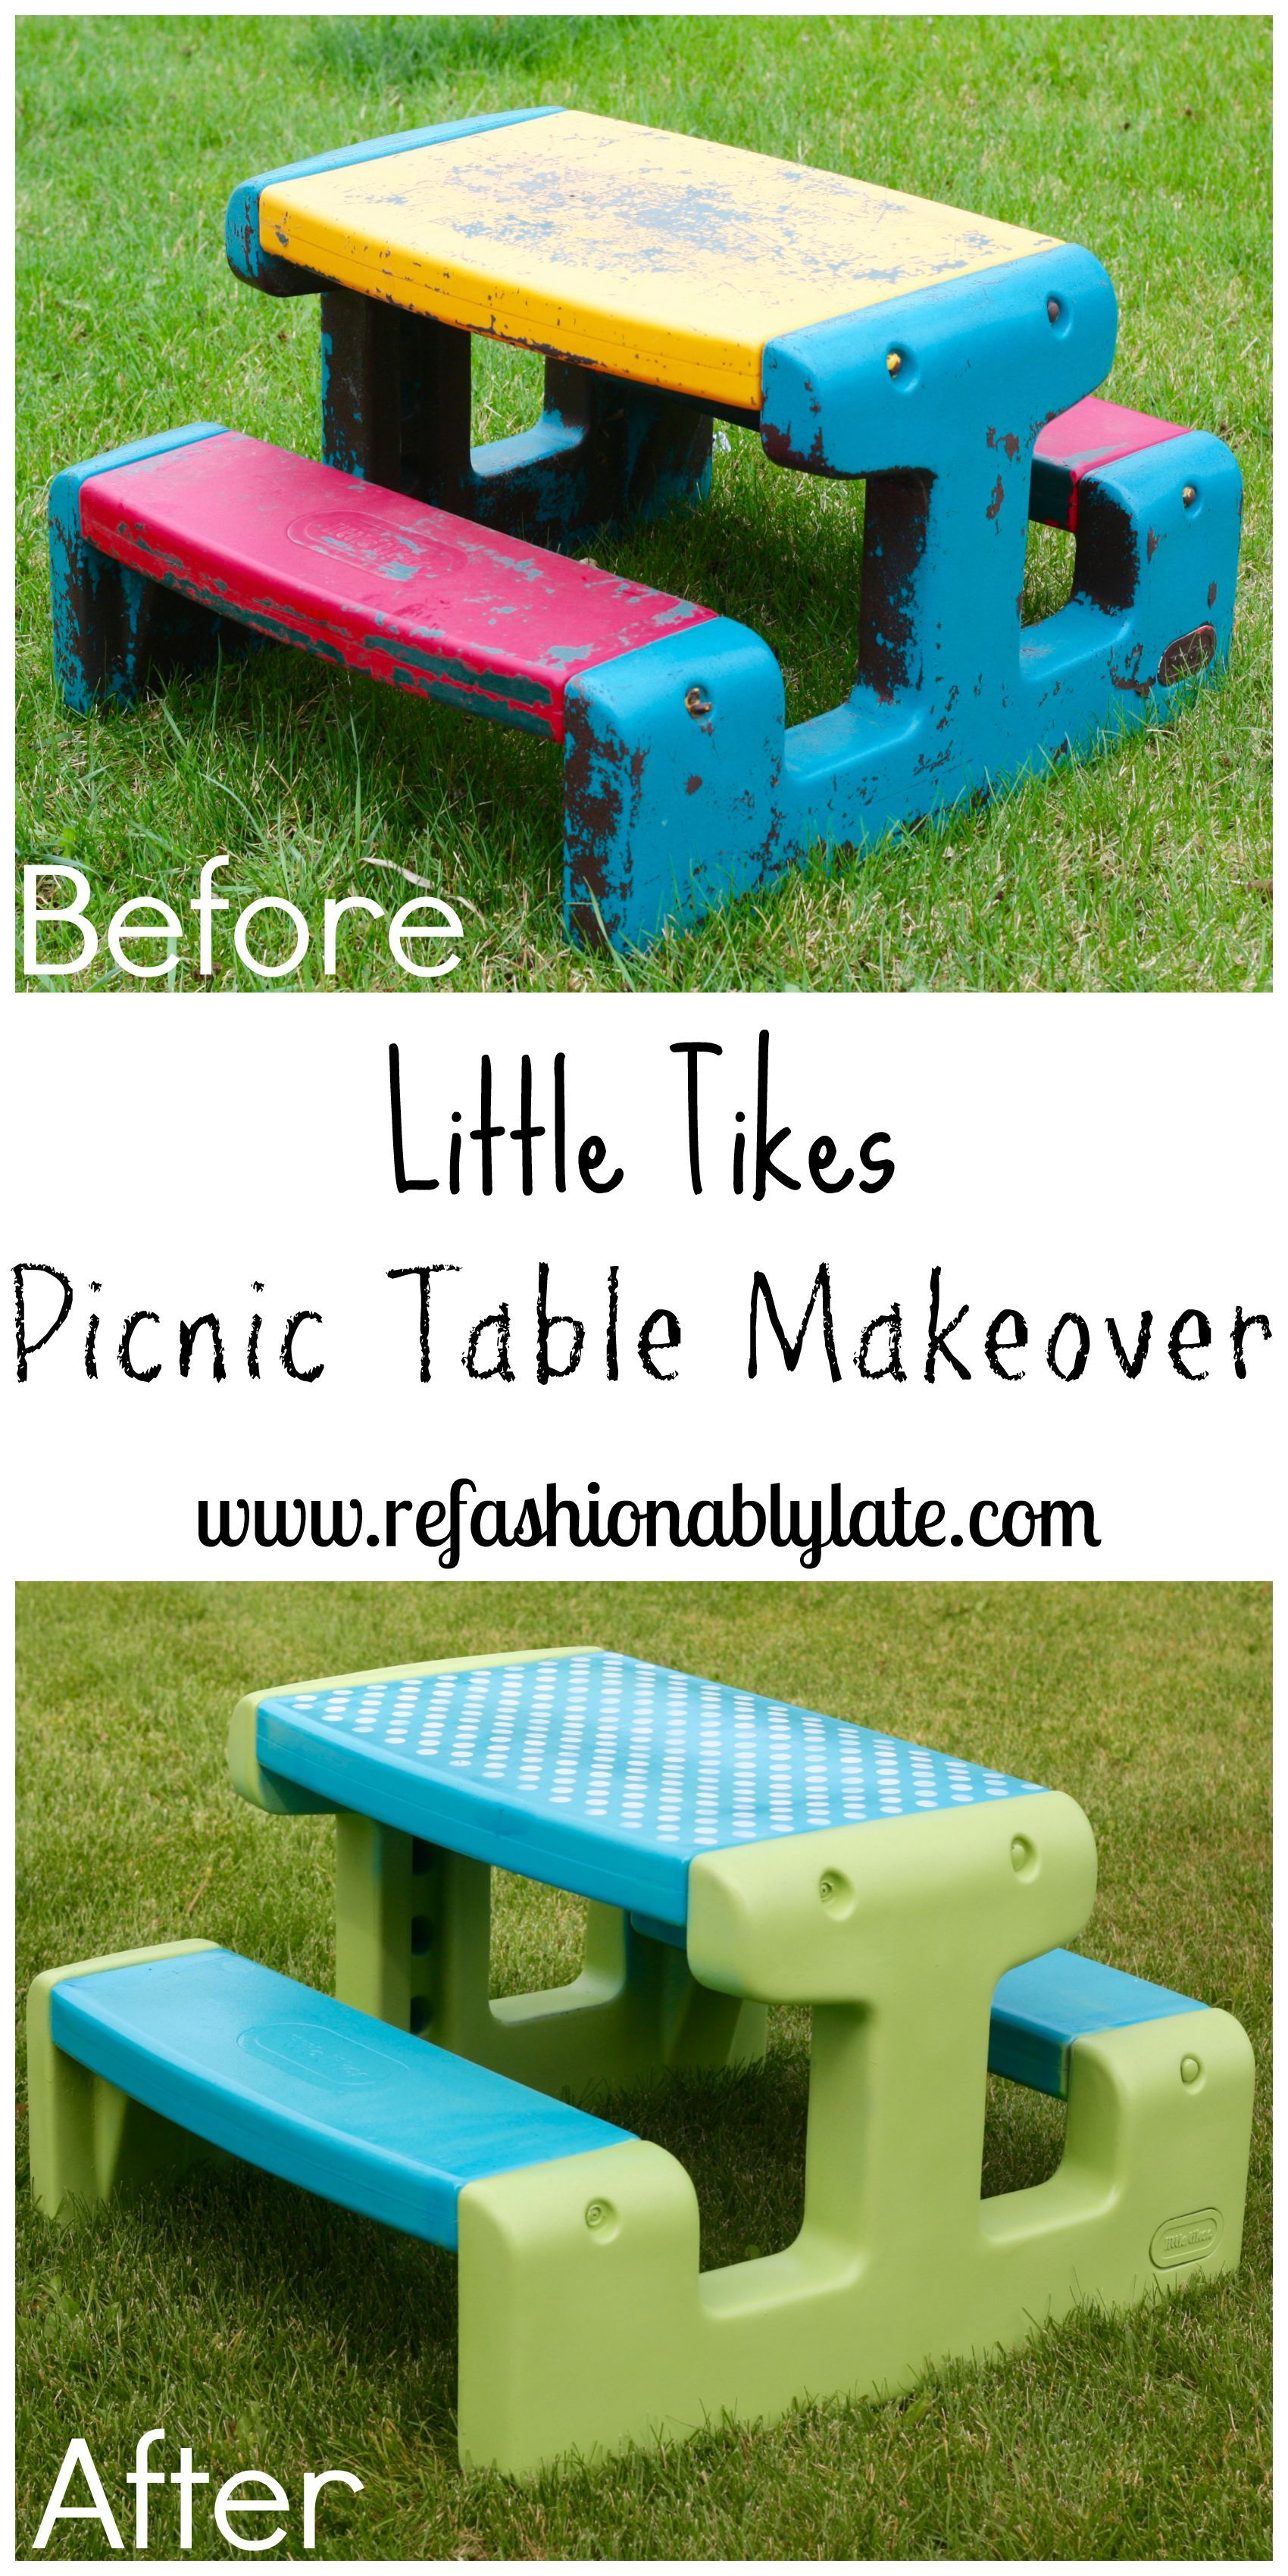 Little Tikes Picnic Table Makeover Diy